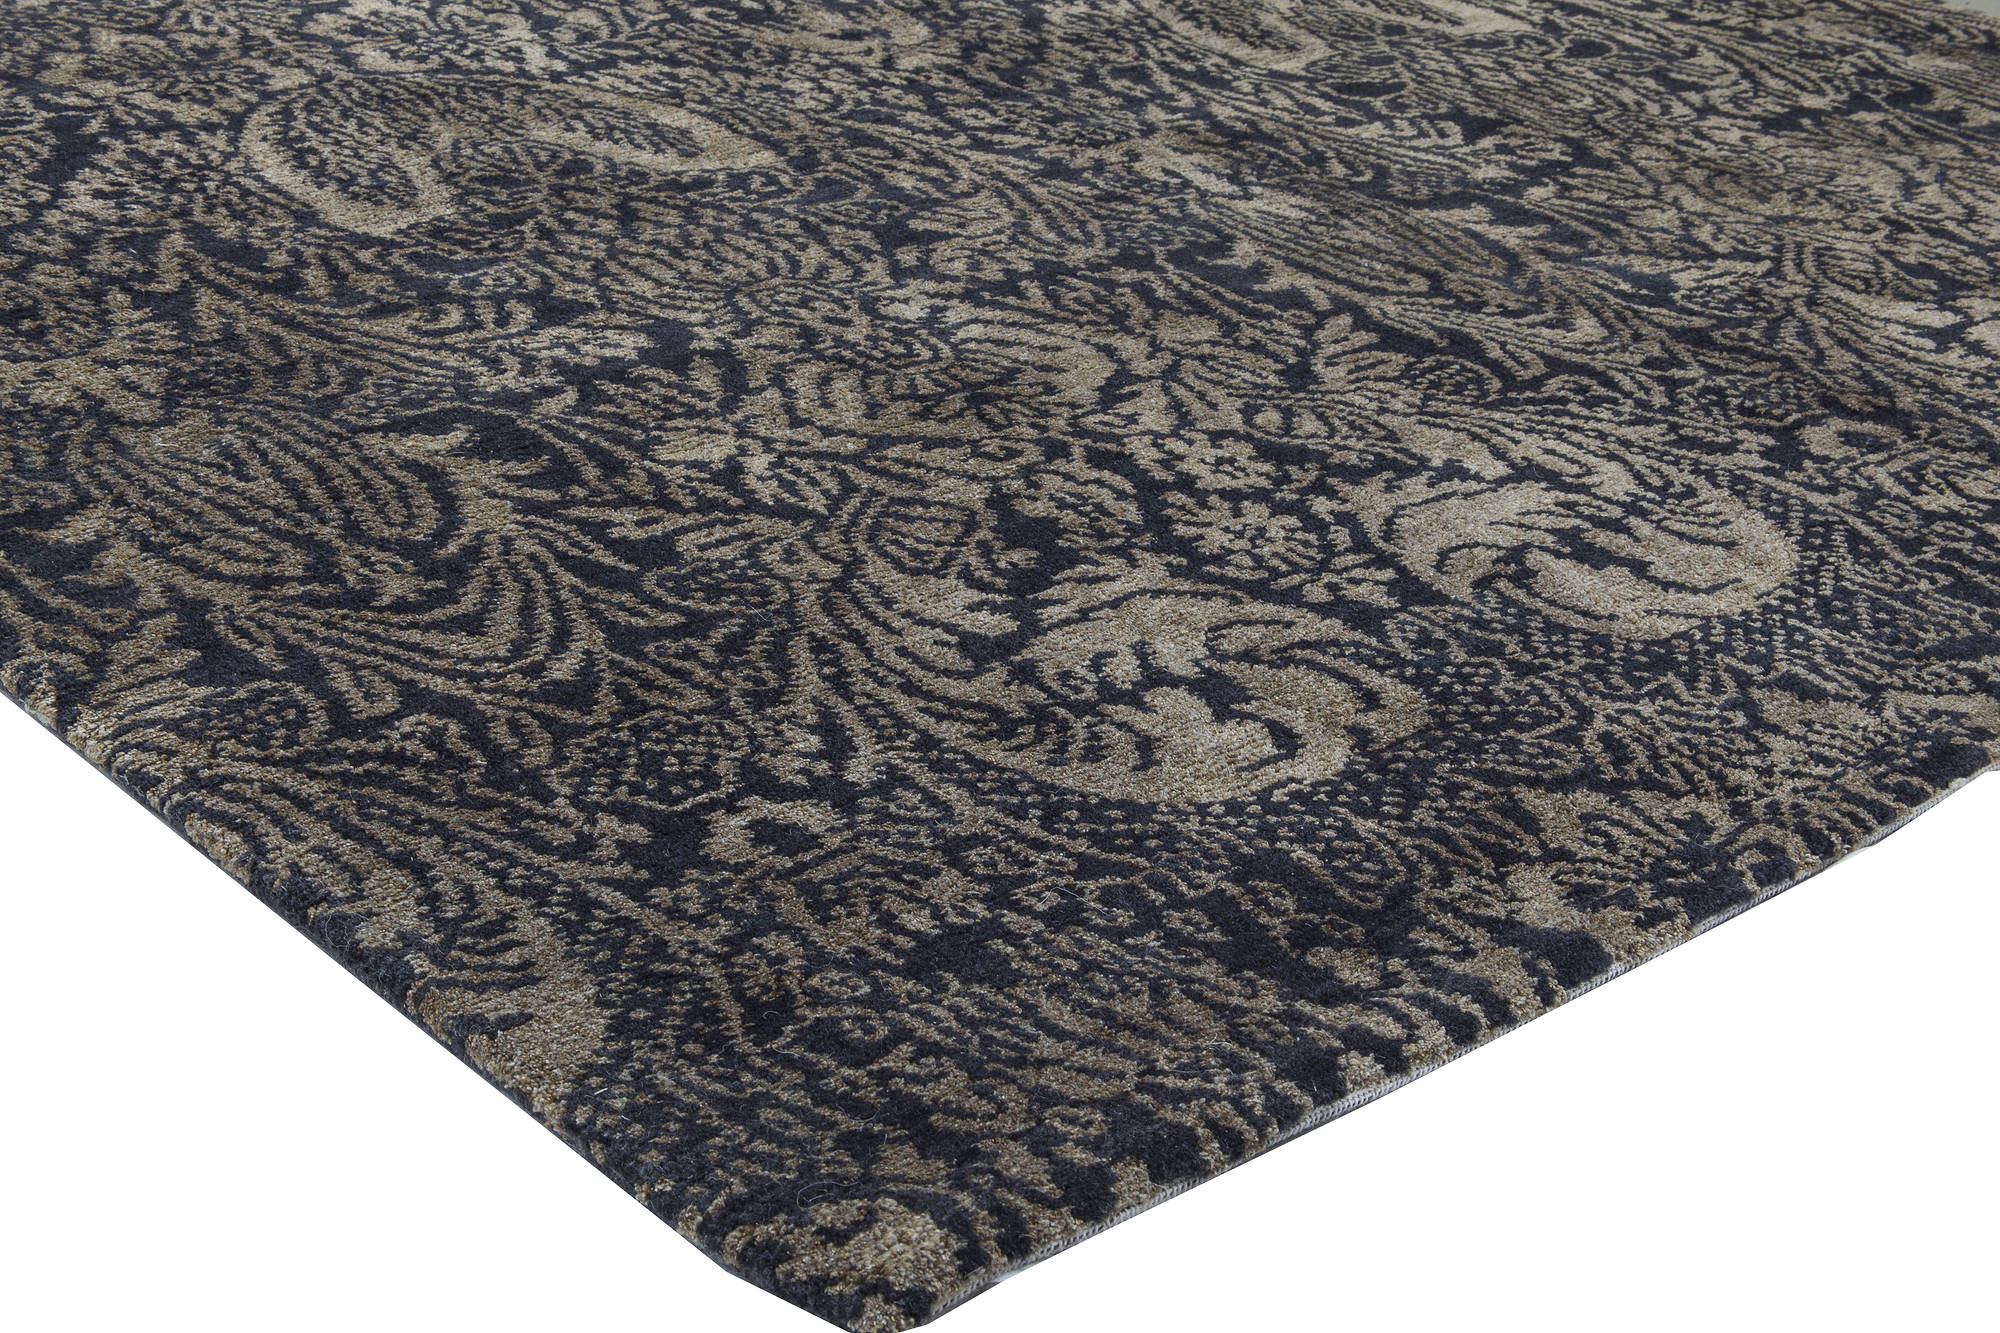 European Inspired Tibetan Rug N11568 By Doris Leslie Blau